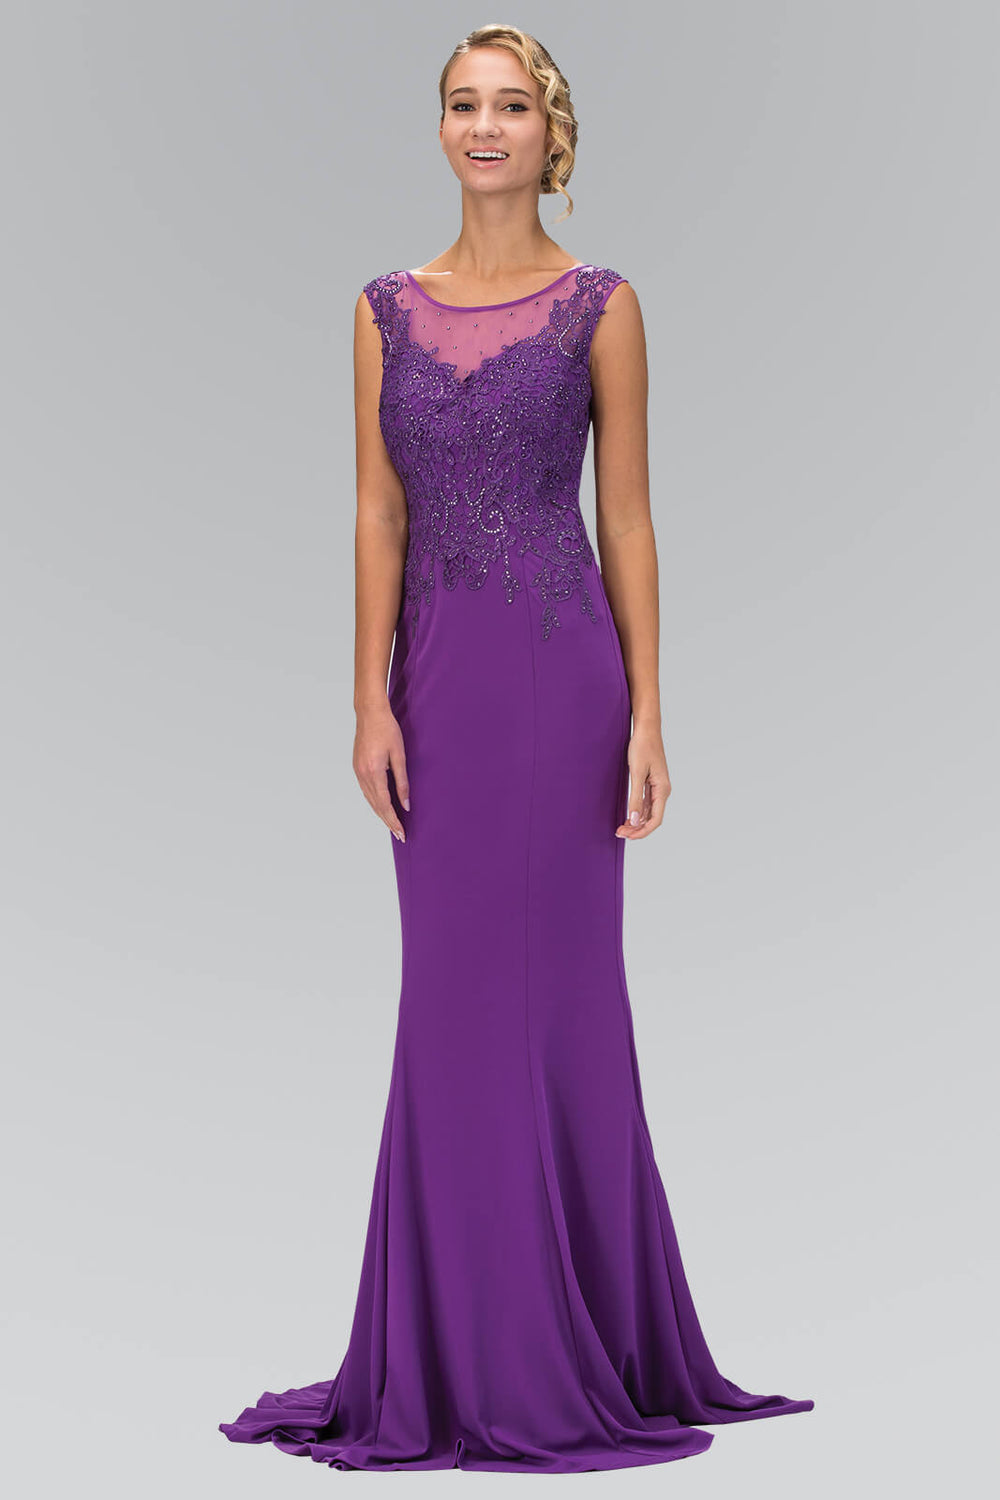 Sleeveless Rome Jersey Long Prom Dress Formal - The Dress Outlet Purple